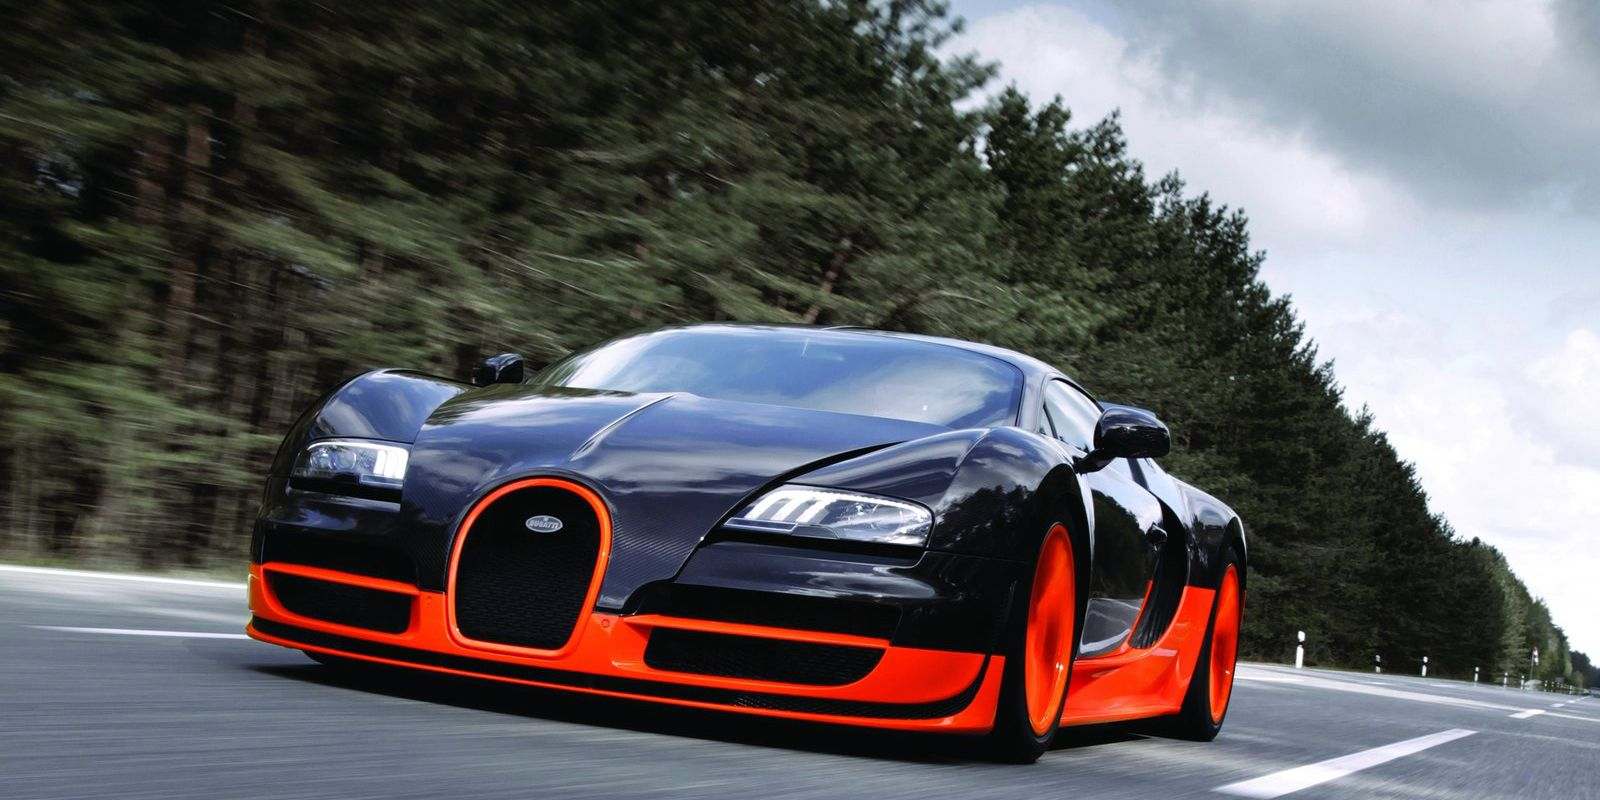 Bugatti bugatti how many made : Here's What It Would Take to Do 300 MPH In a Bugatti Veyron